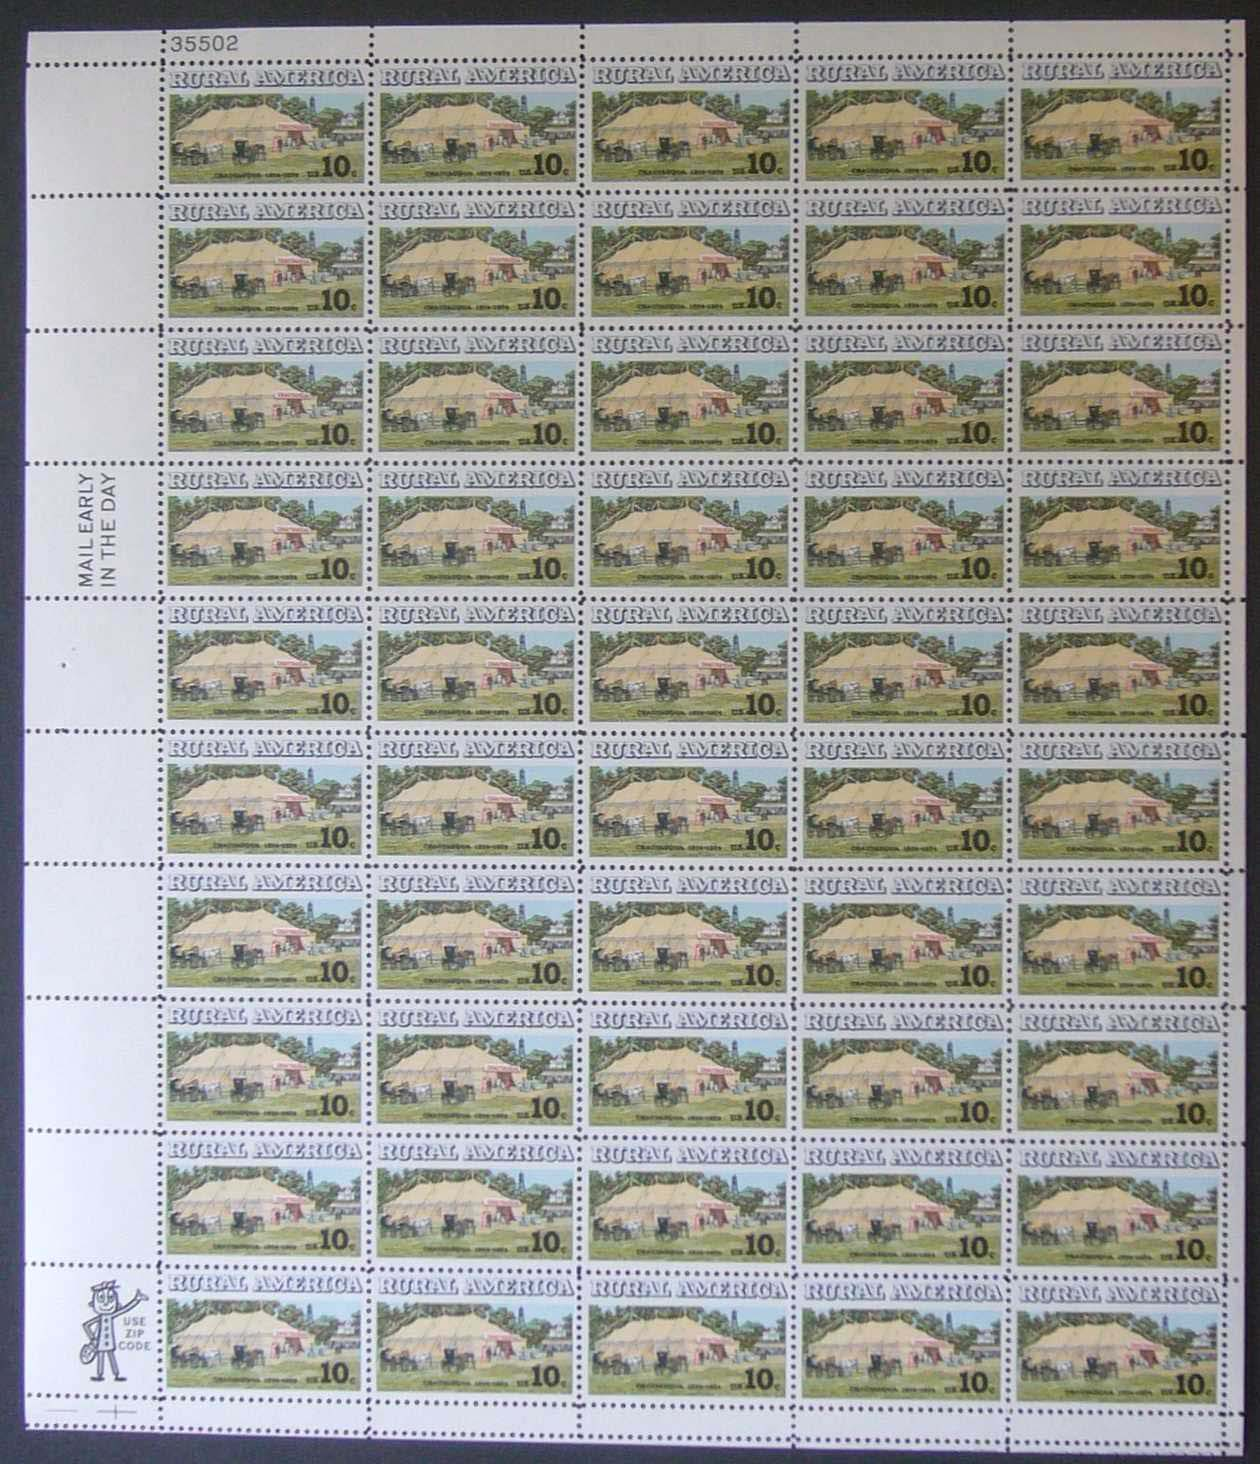 "Scott 1505 Sheet (10 cents) <p> <a href=""/images/USA-Scott-1505-Sheet.jpg""><font color=green><b>View the image</a></b></font>"